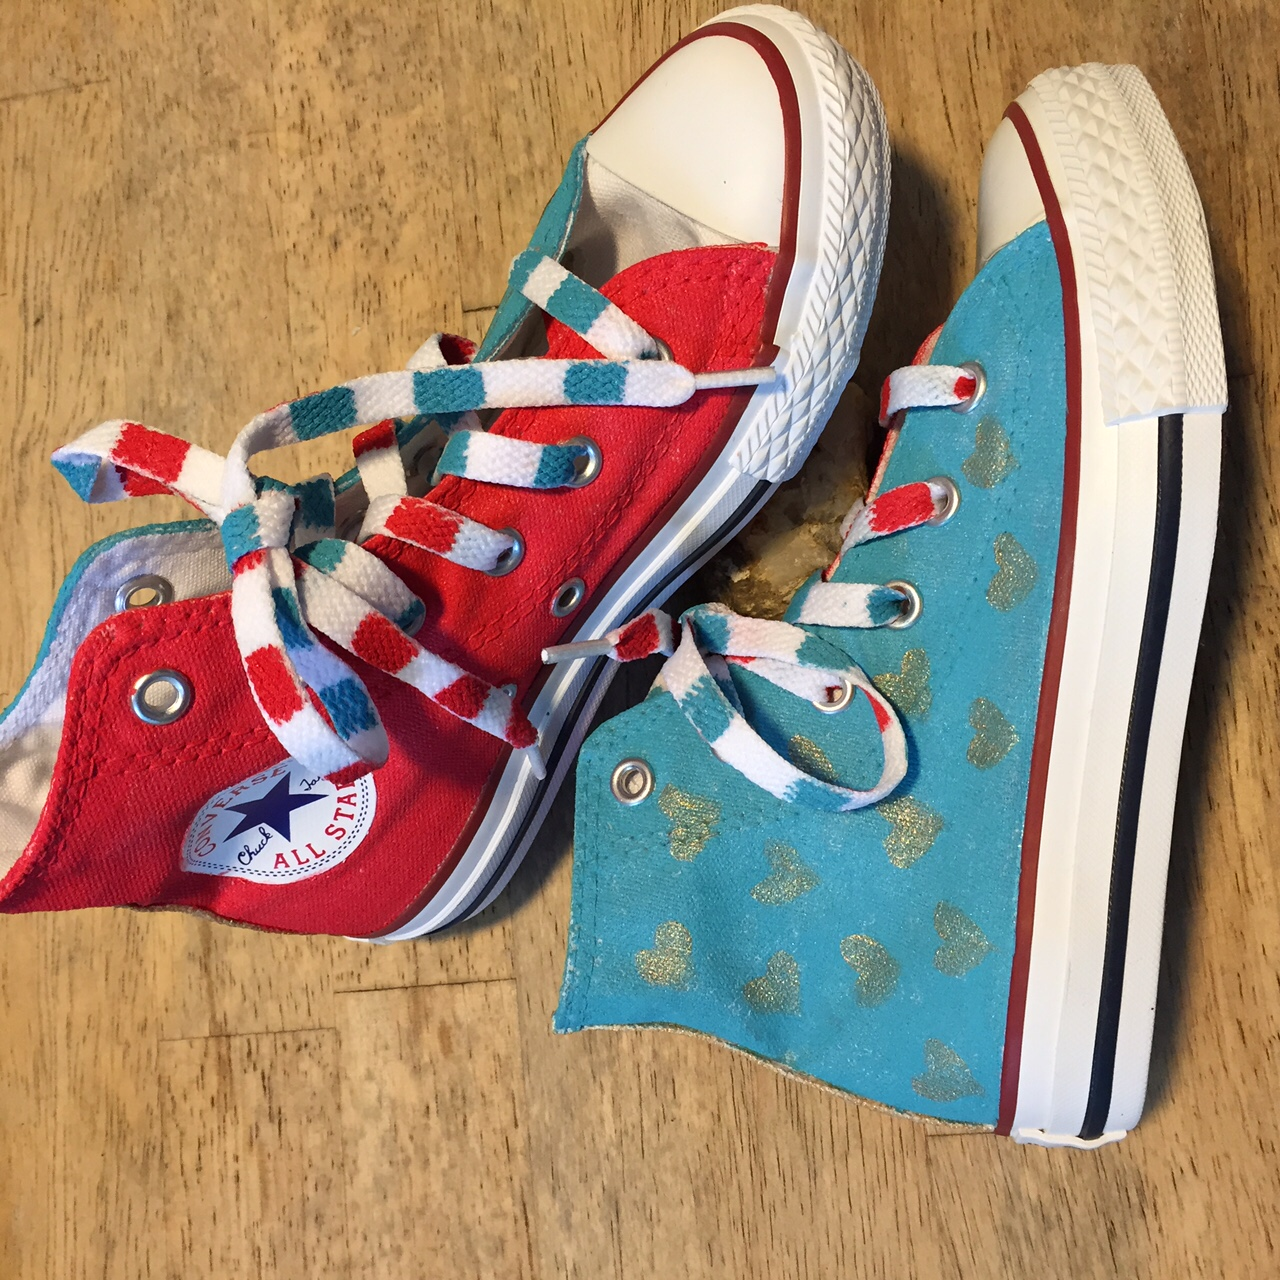 The second pair of Converse I customized to benefit Youth Art Exchange.